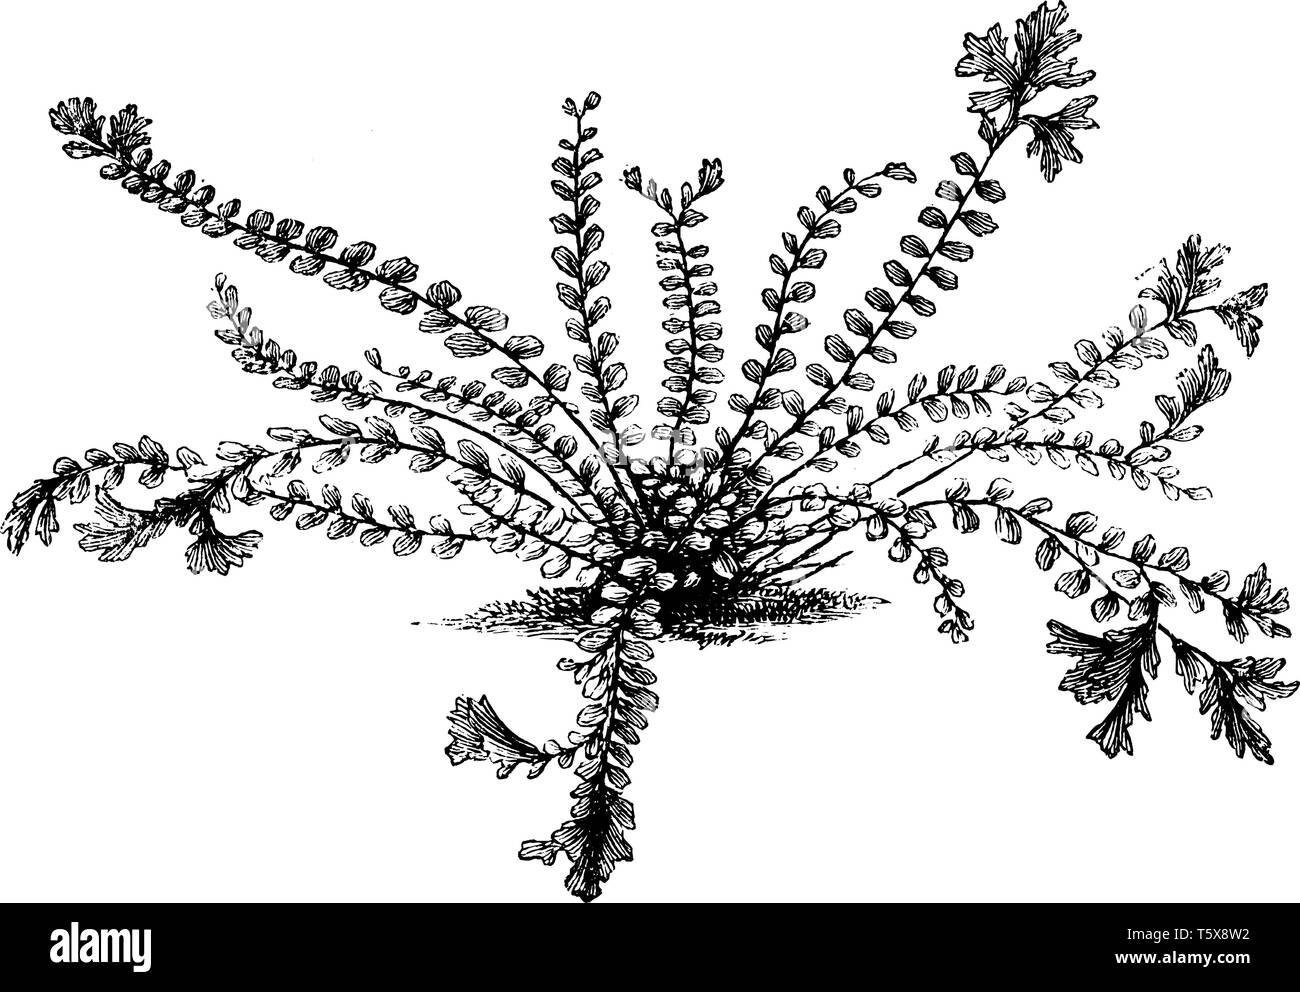 A picture showing Asplenium trichomanes cristatum. This is the crested maidenhair spleenwort. The black stems and forked, crested tips give this fern  - Stock Image